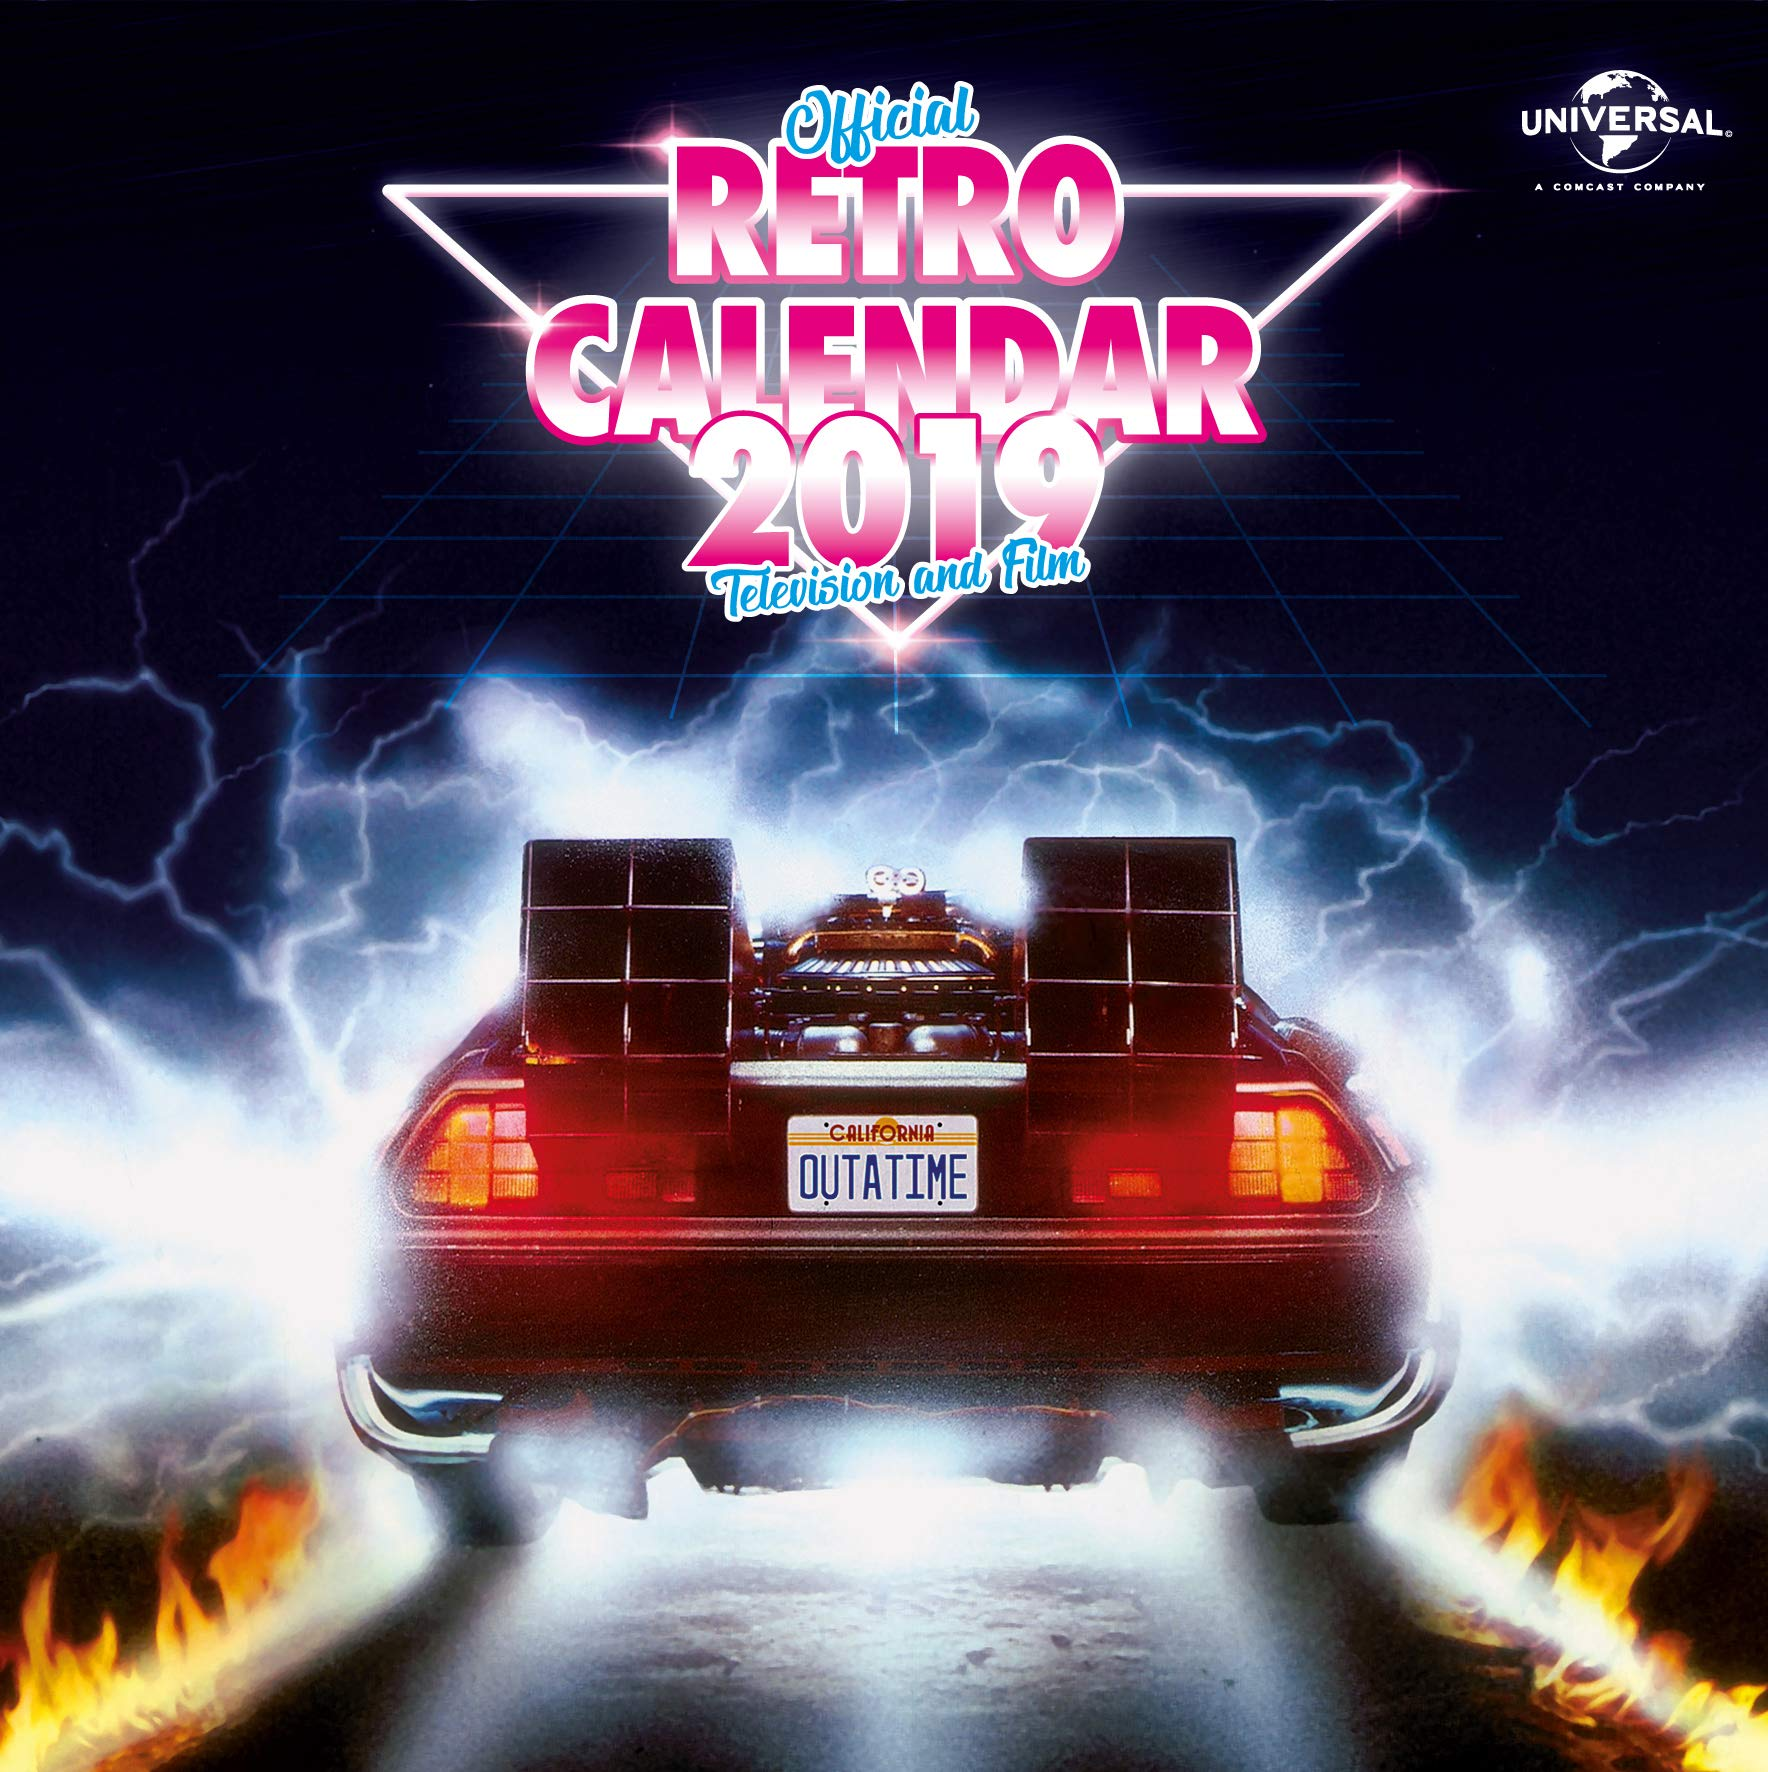 Universal Classic Movie Posters Official 2019 Calendar - Square Wall Calendar Format (Anglais) Calendrier – Calendrier mural, 15 septembre 2018 Danilo Promotions Limited 1785496778 NON-CLASSIFIABLE Address Books